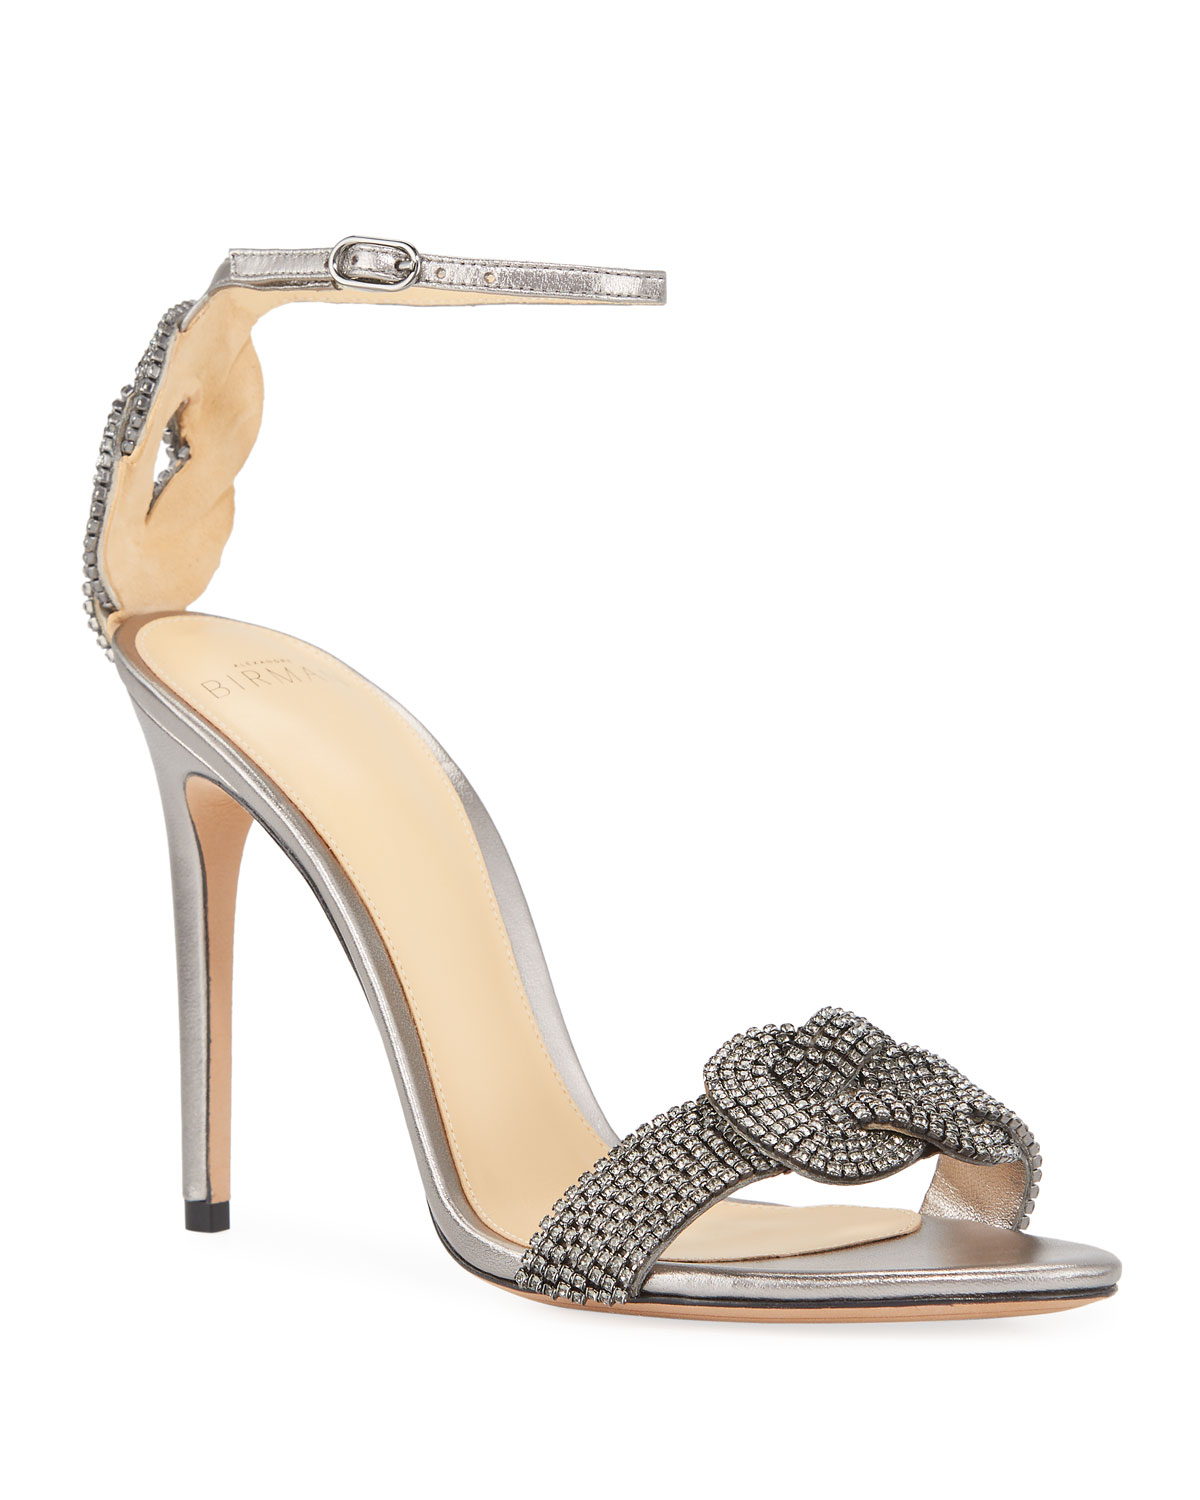 Vicky Crystal Metallic Sandals